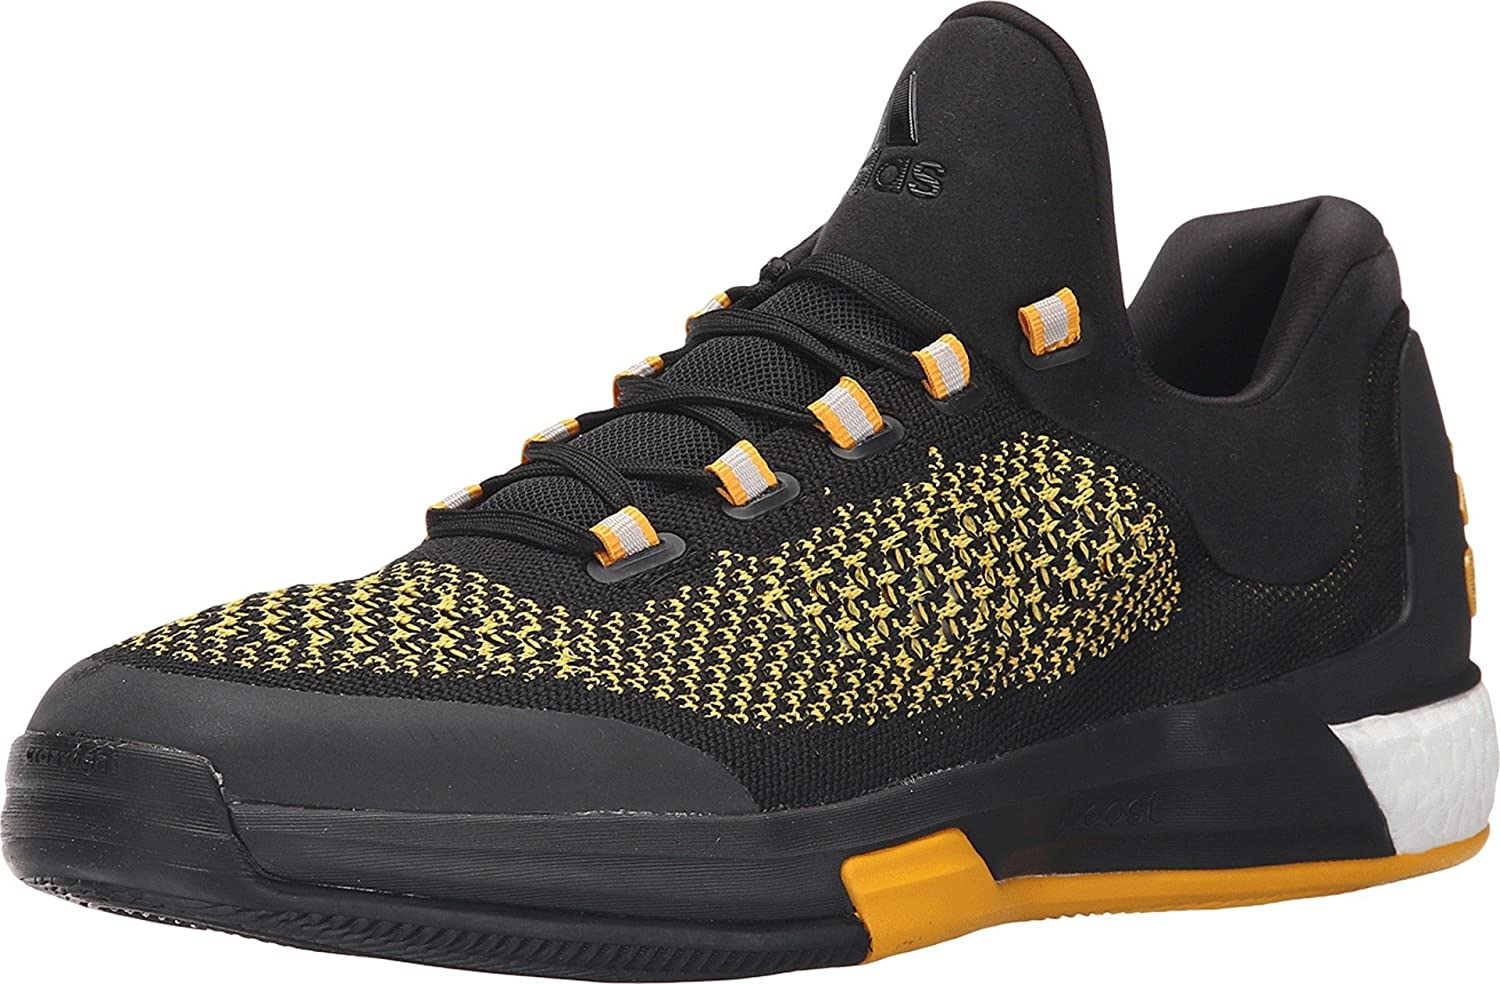 adidas Crazylight Boost 2015 Men's Basketball Shoes 10.5 for